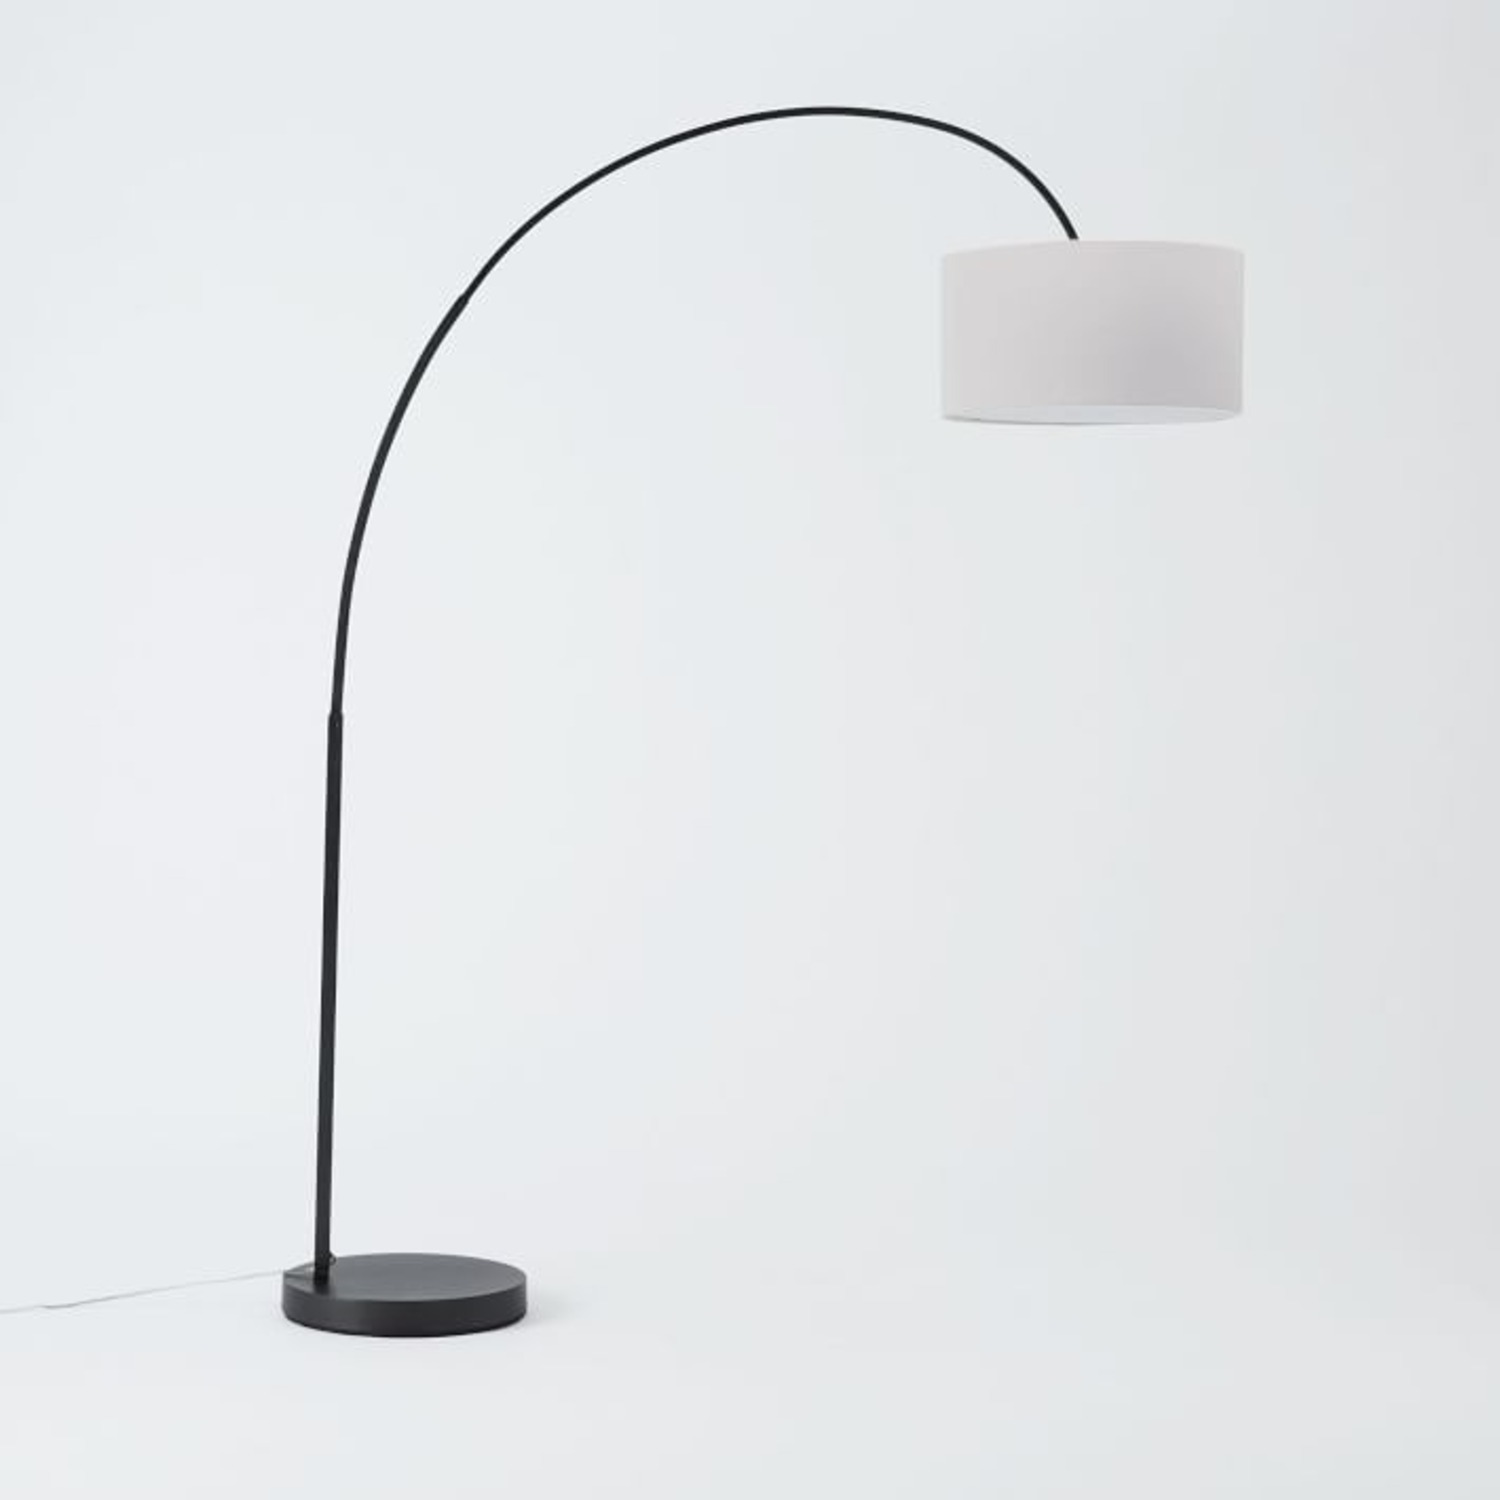 West Elm Cfl Overarching Floor Lamp - image-1